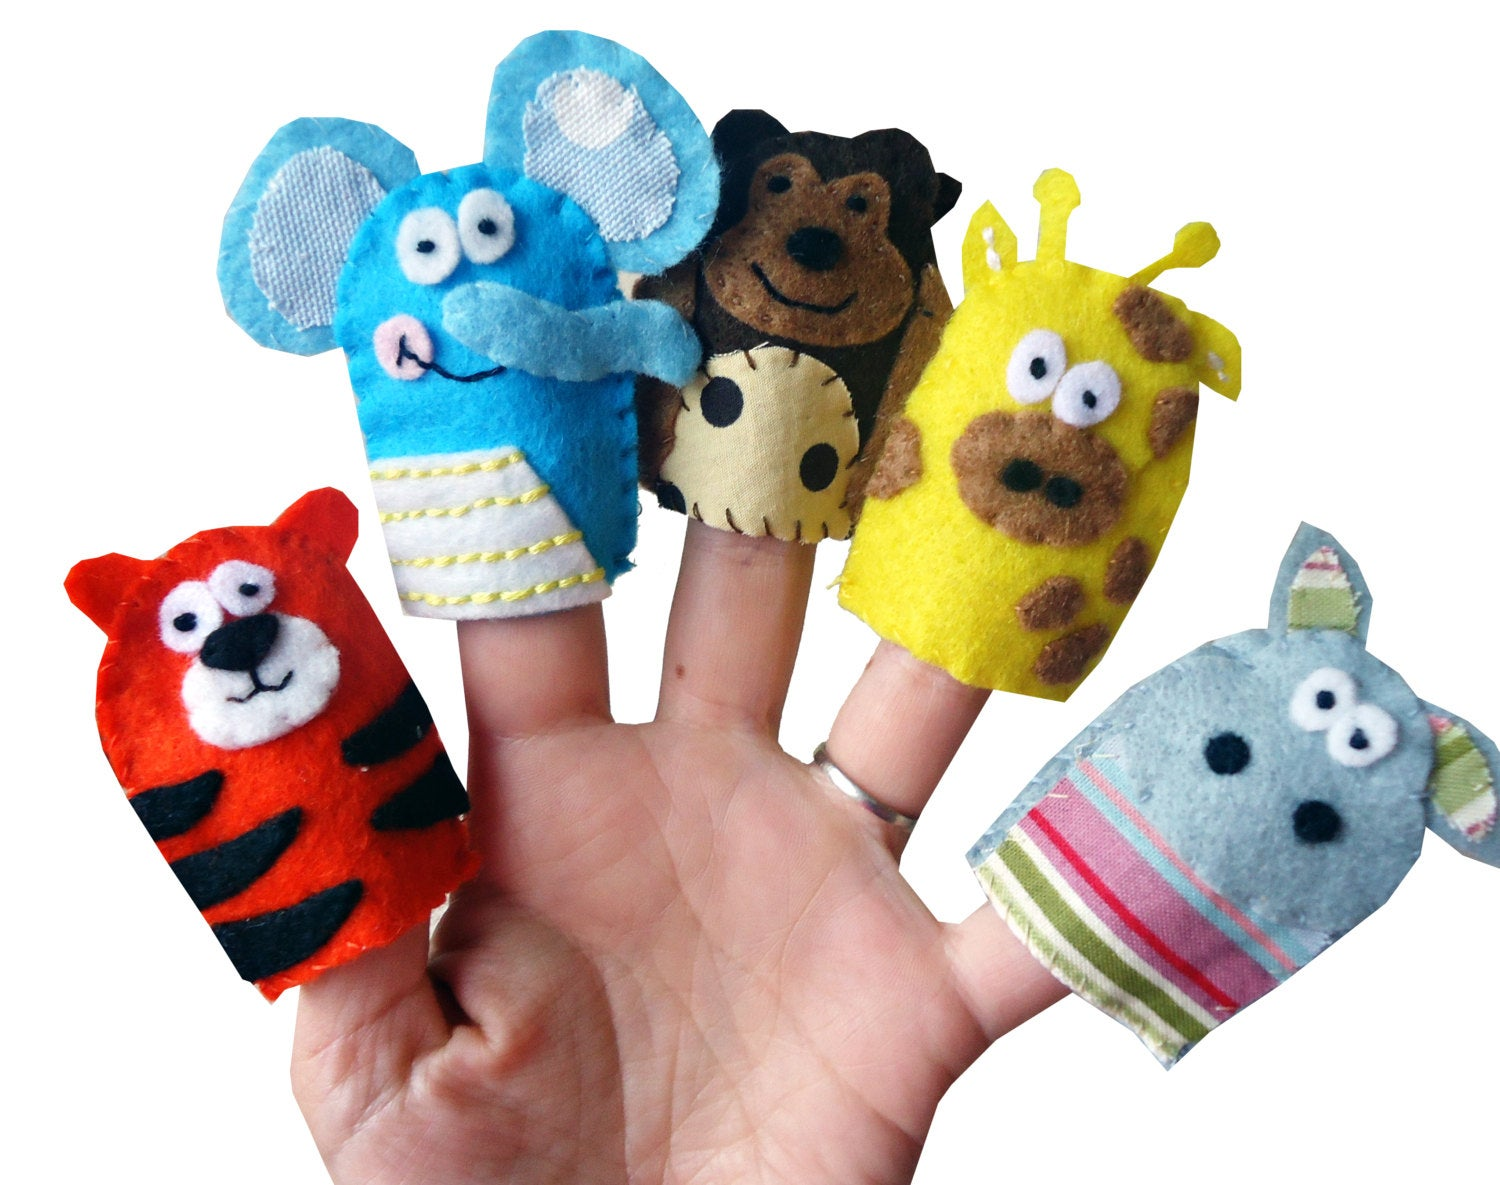 Jungle Animal Finger Puppets, Kids Stocking Filler, Party Favors, Traditional Toys